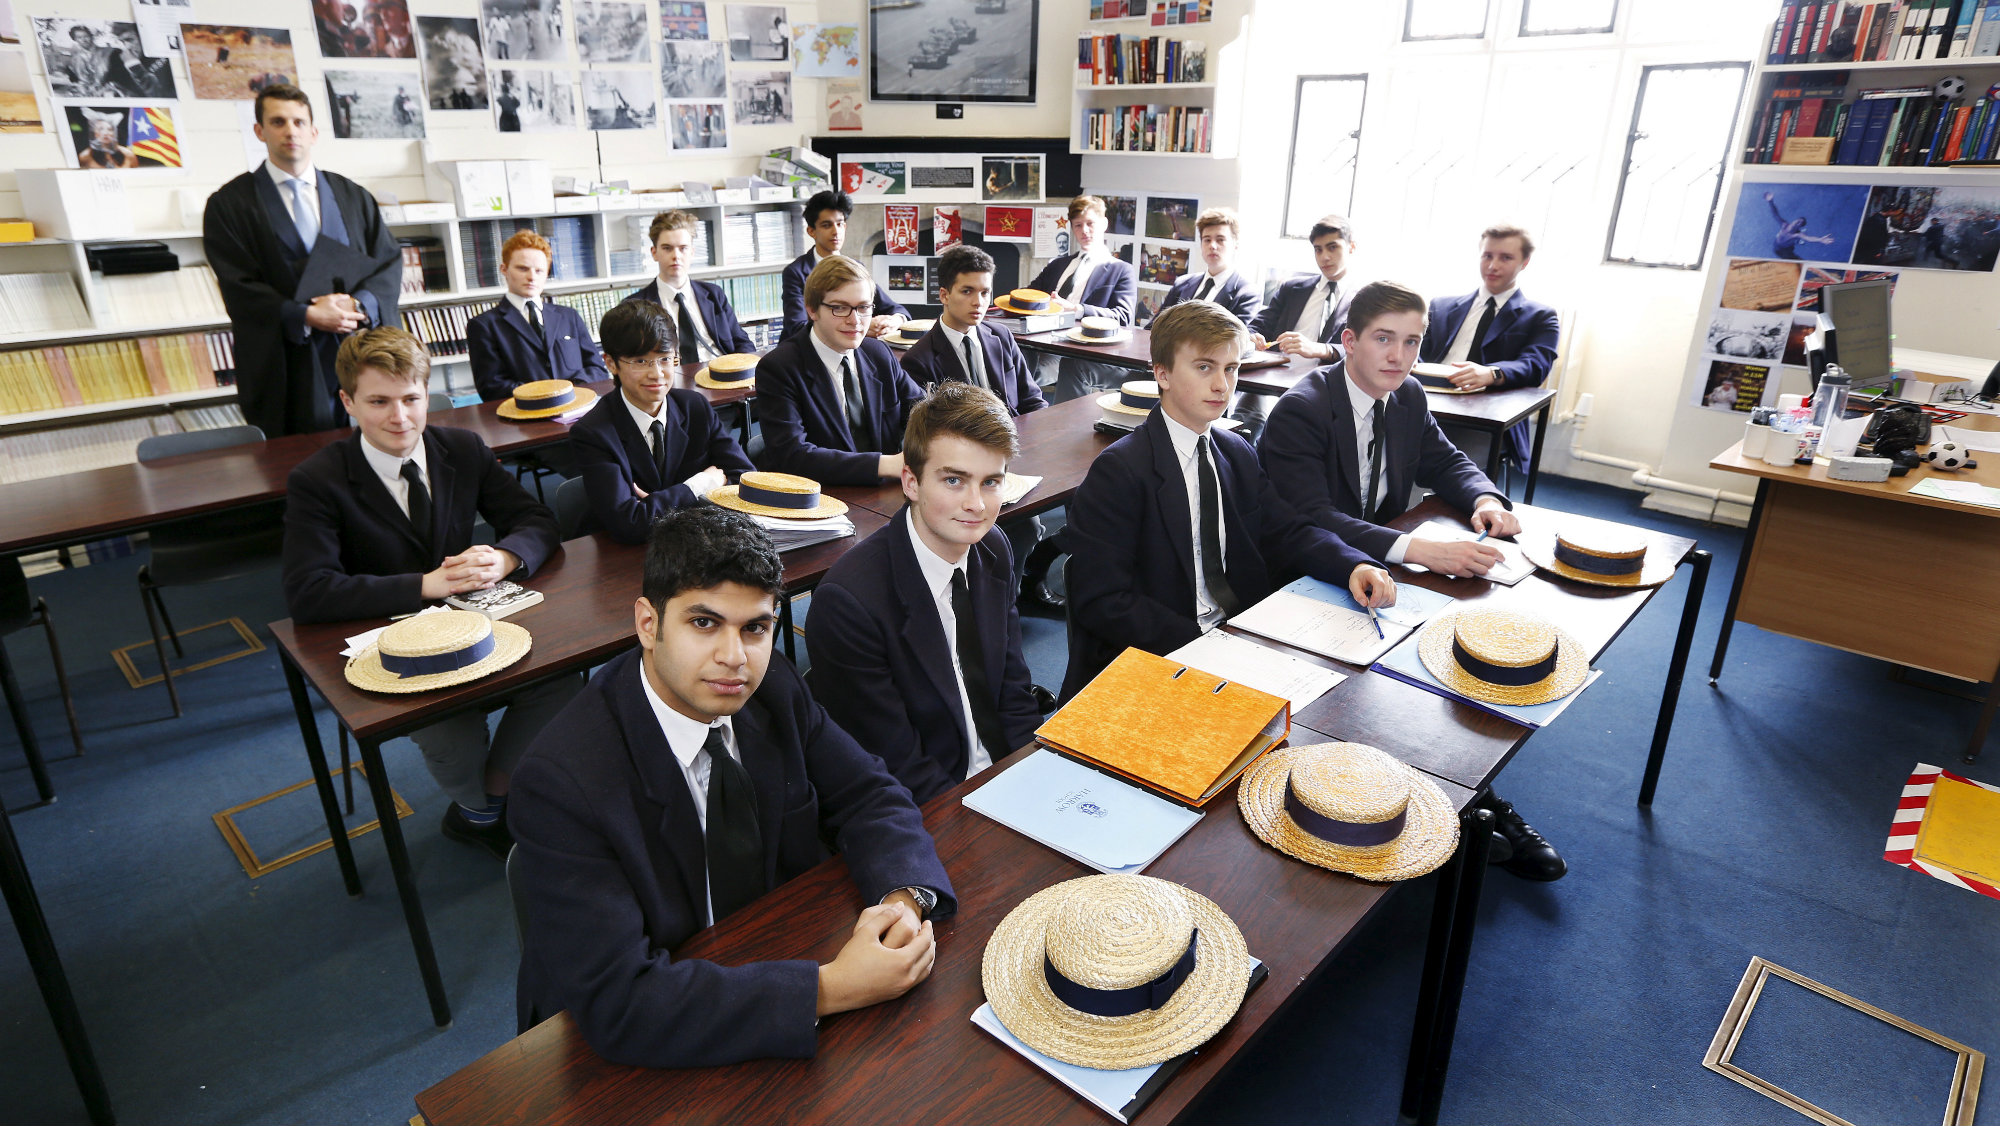 Students in a classroom at a London school